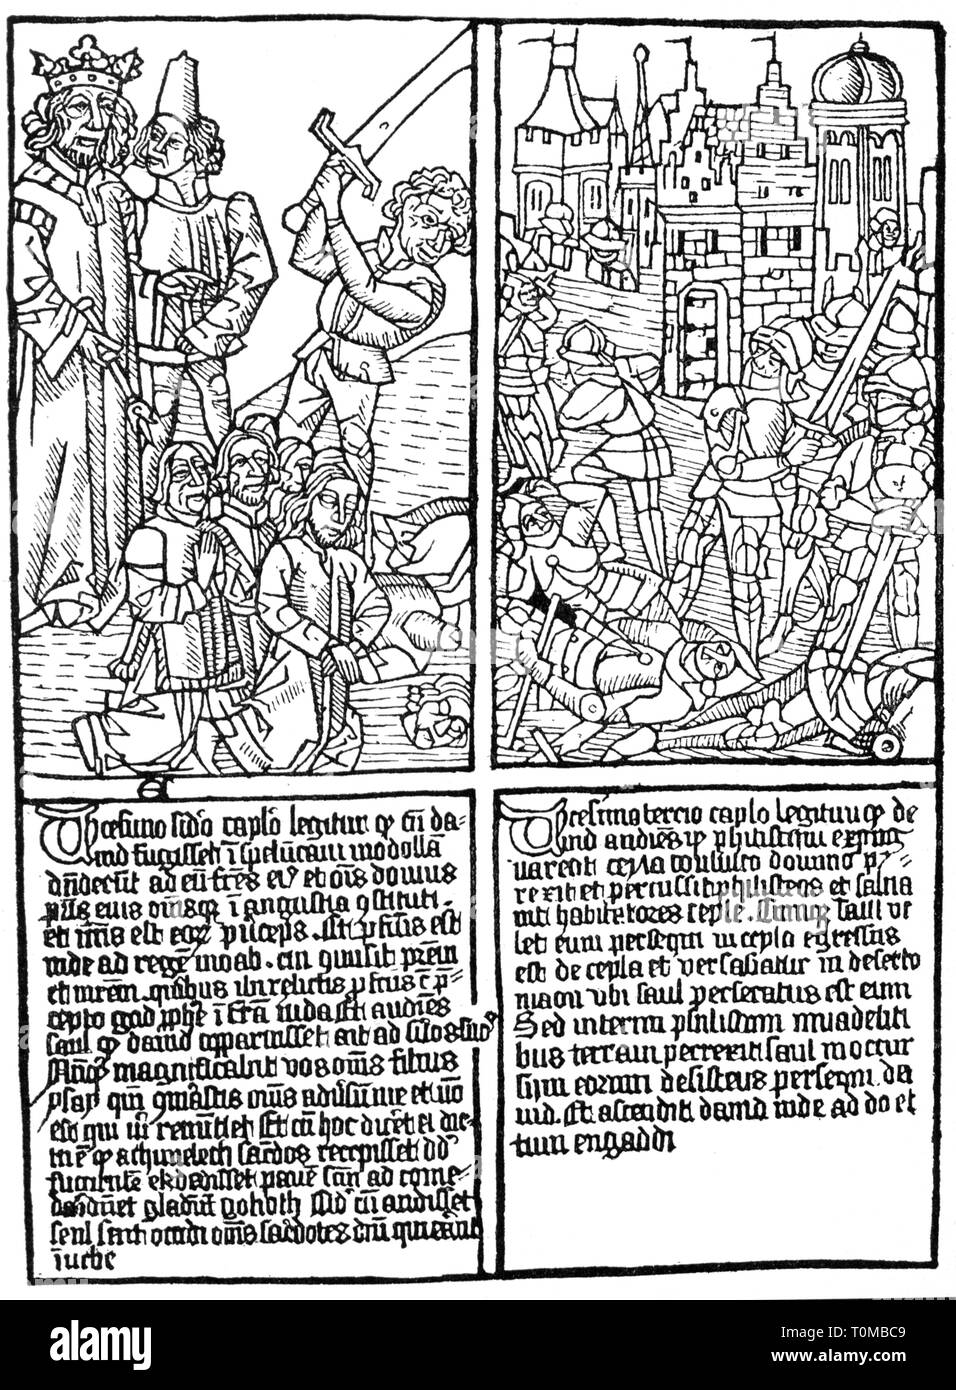 religion, Christianity, books, Old Testament, Book of Kings, page, woodcut, 15th century, Bible, biblical scene, biblical scenes, biblical story, biblical stories, execution, executions, behead, beheading, bloodbath, carnage, slaughter, massacre, massacres, war, wars, letterpress, Middle Ages, Gothic style, Gothic period, fine arts, art, graphic, graphics, script, scripts, Latin language, in Latin, people, religion, religions, book, books, last will, last will and testament, make a will, by will, king, kings, page, pages, woodcut, woodcuts, histo, Additional-Rights-Clearance-Info-Not-Available - Stock Image